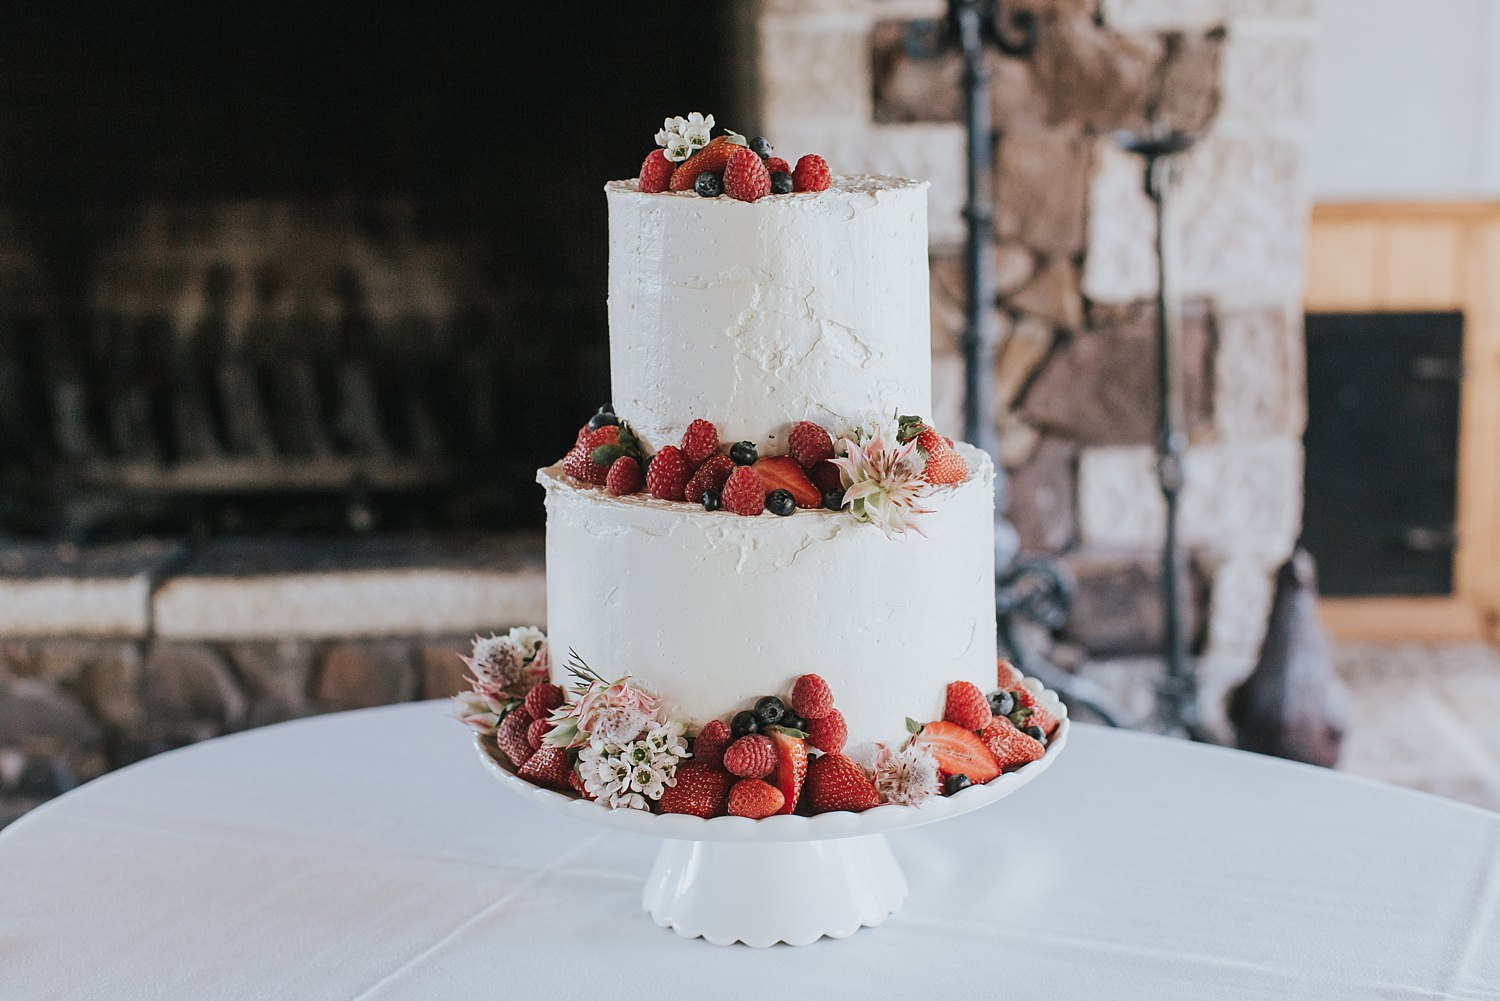 centennial vineyards wedding cake